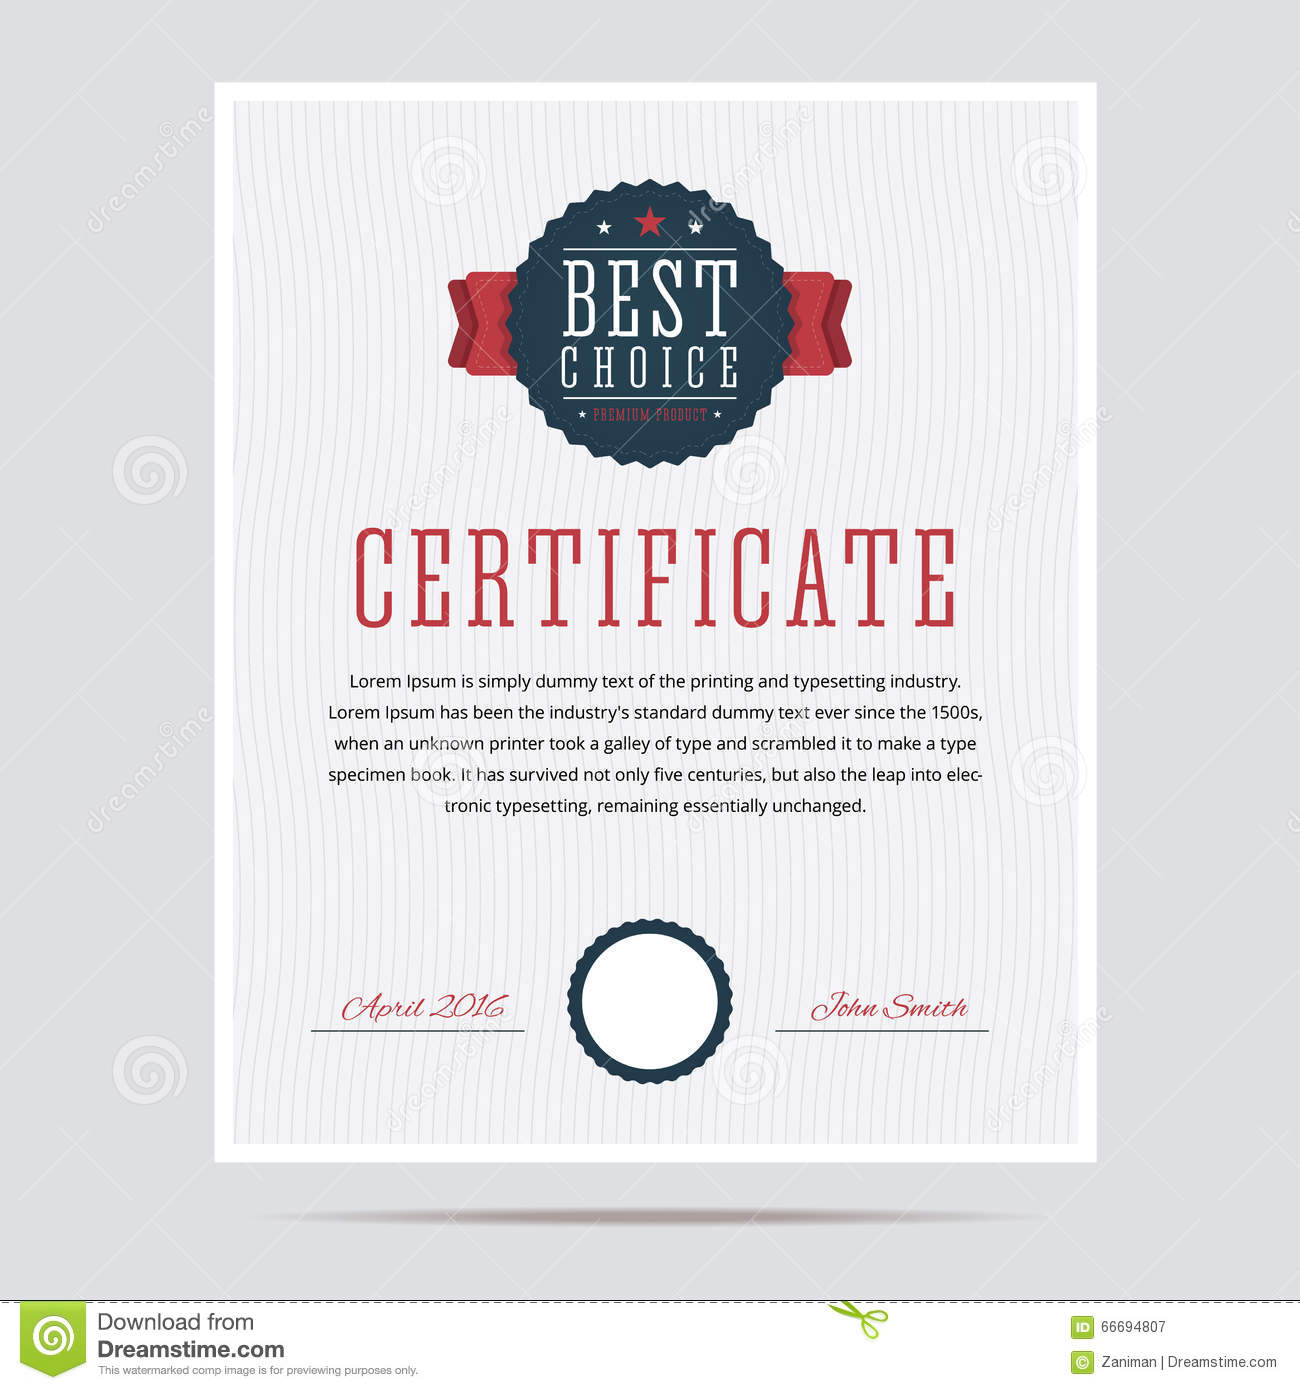 Best Choice Certificate. Stock Vector - Image: 66694807